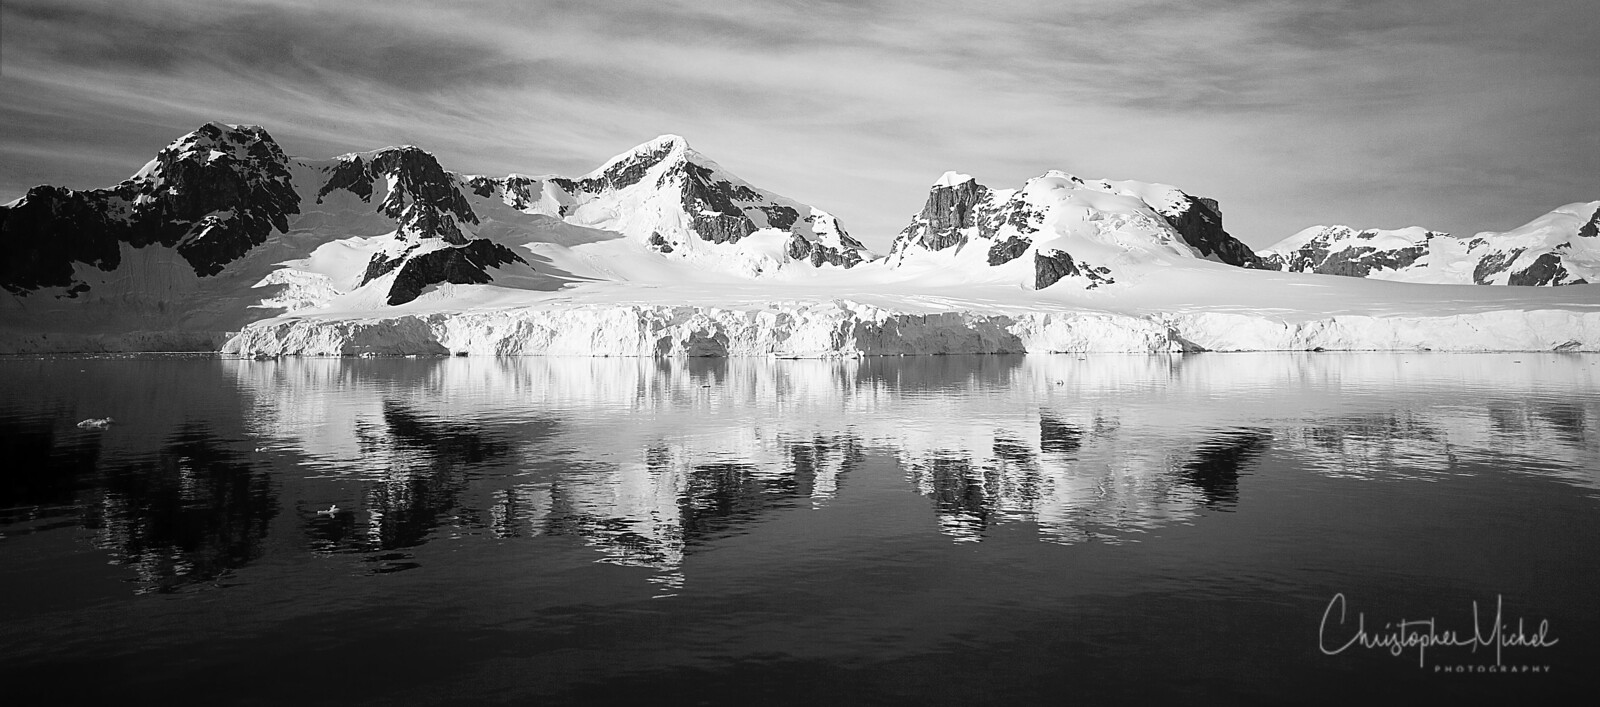 Antarctica left a restless longing in my heart beckoning towards an incomprehensible perfection forever beyond the reach of mortal man. Its overwhelming beauty touches one so deeply that it is like a wound.  —Edwin Mickleburgh Beyond the Frozen Sea